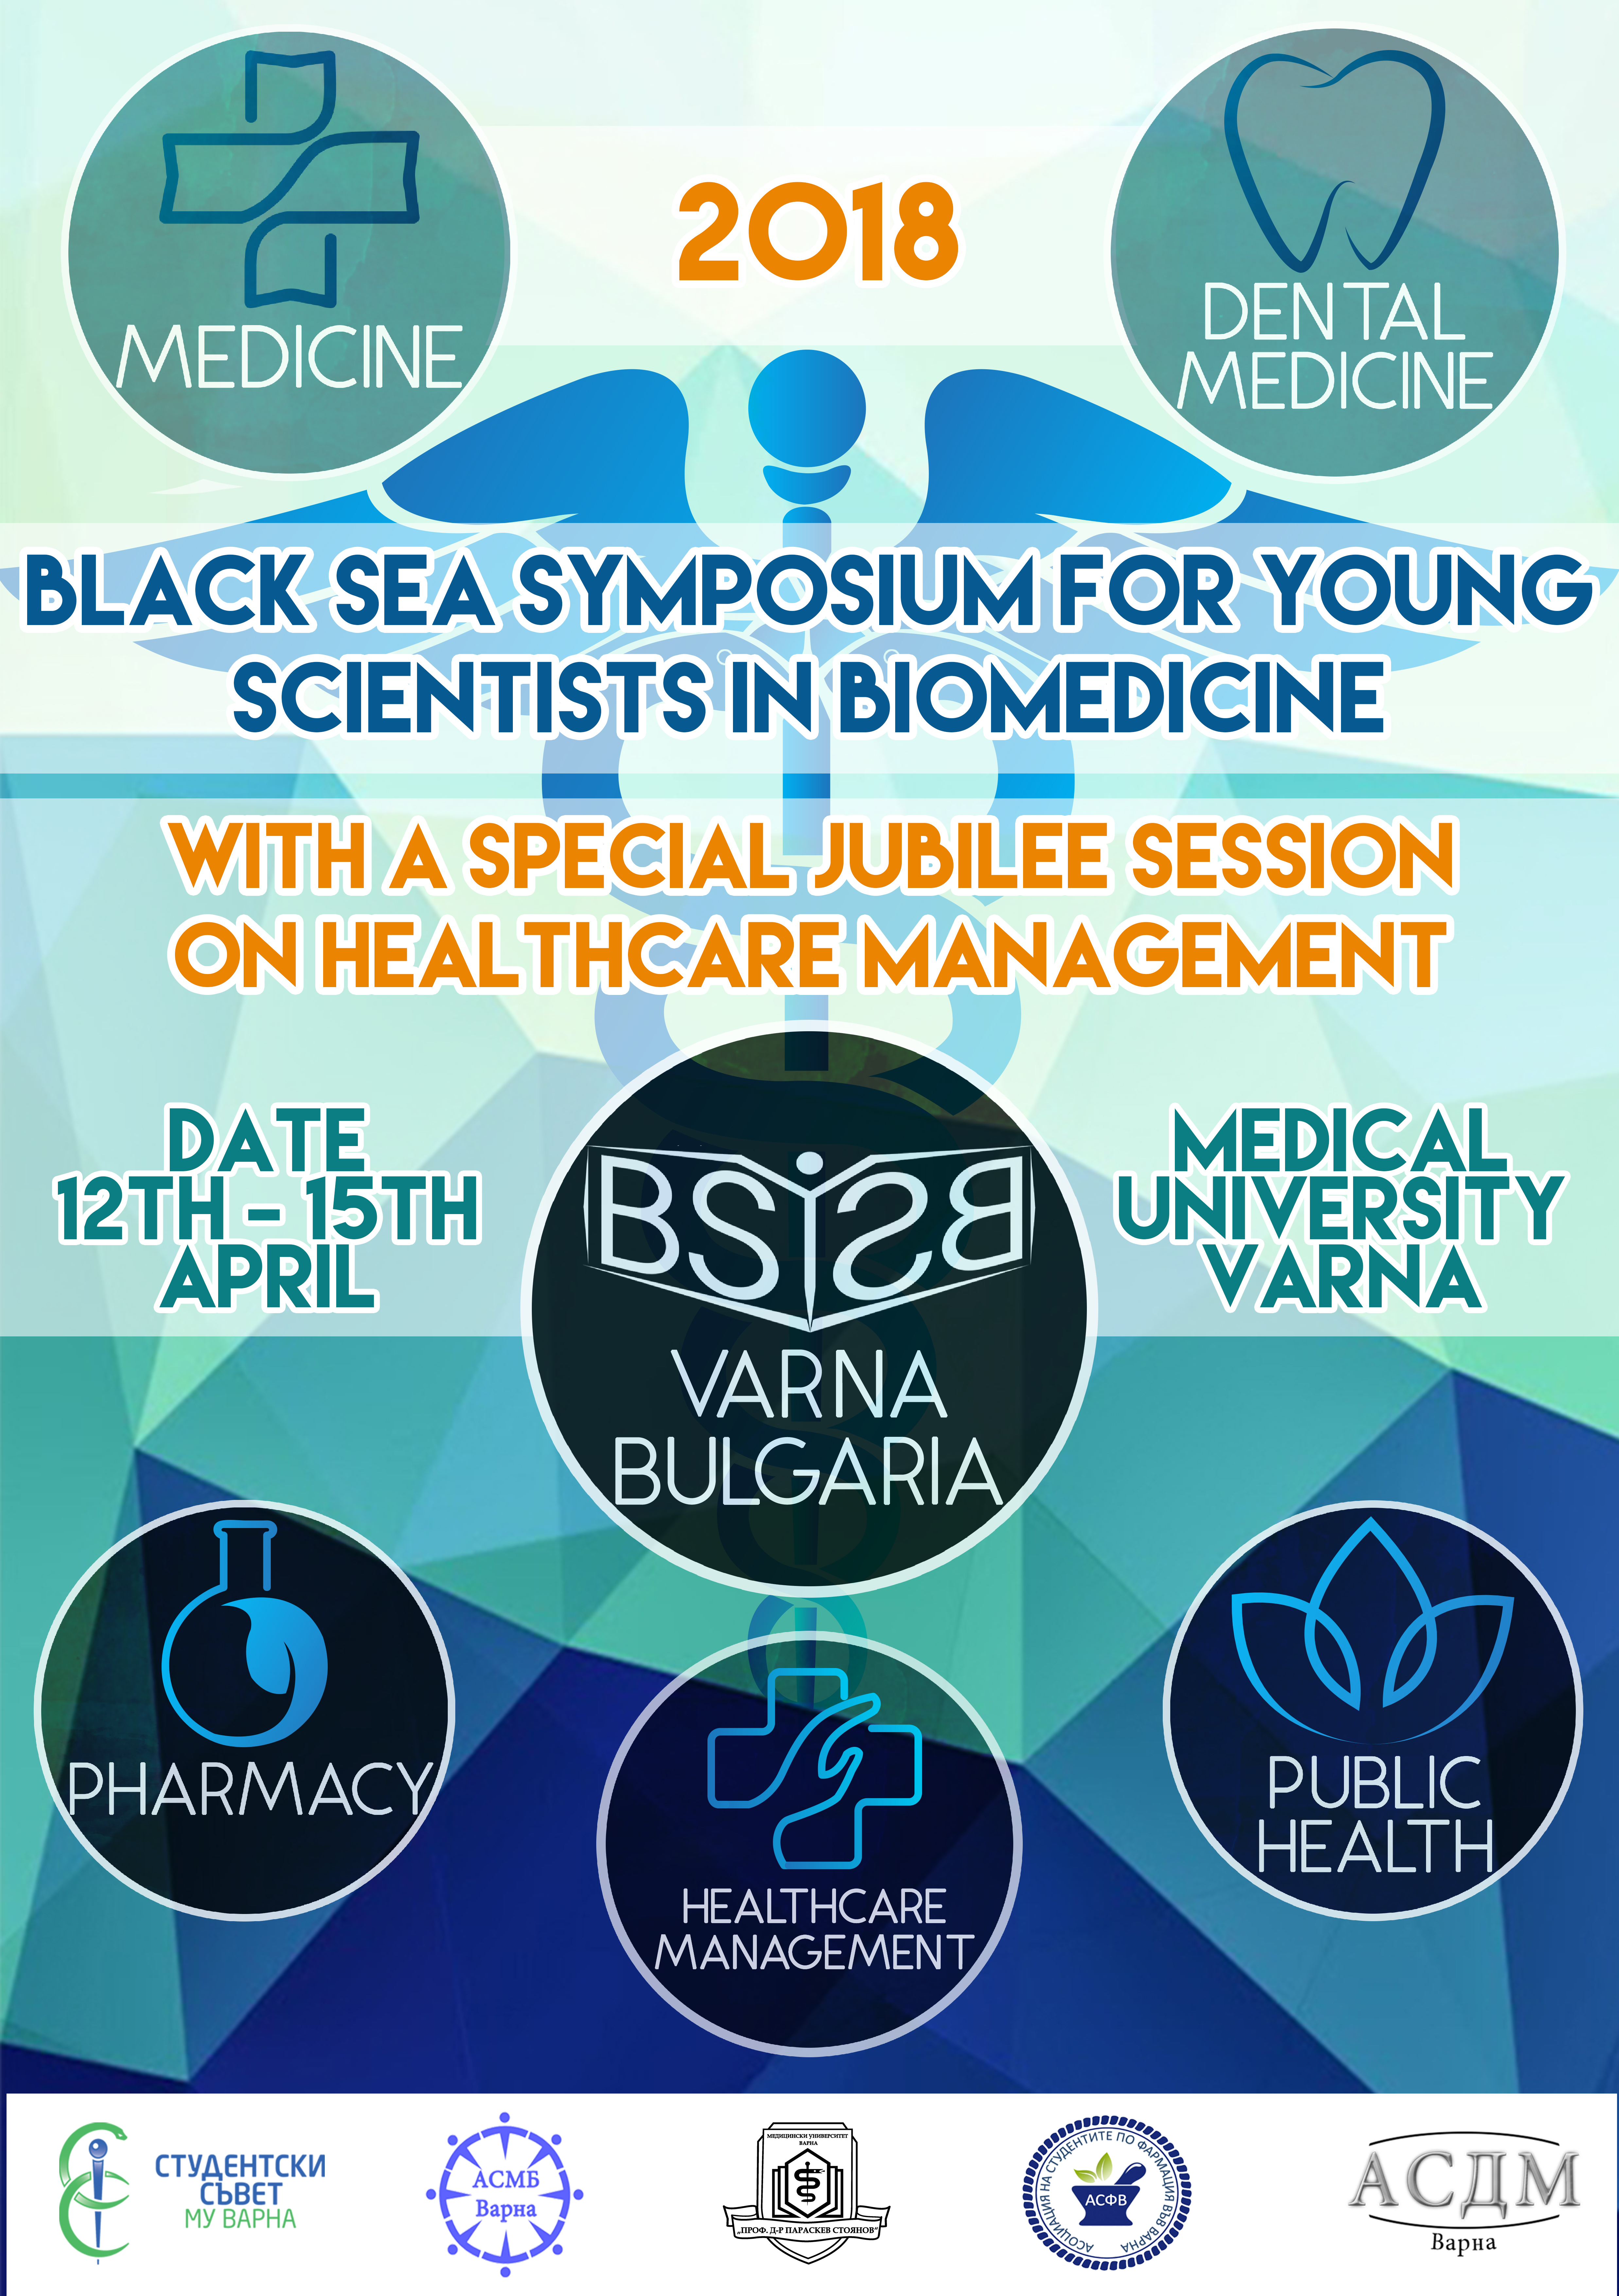 Black Sea Symposium for Young Scientists in Biomedicine 2018 with a Jubilee Session on Healthcare Management